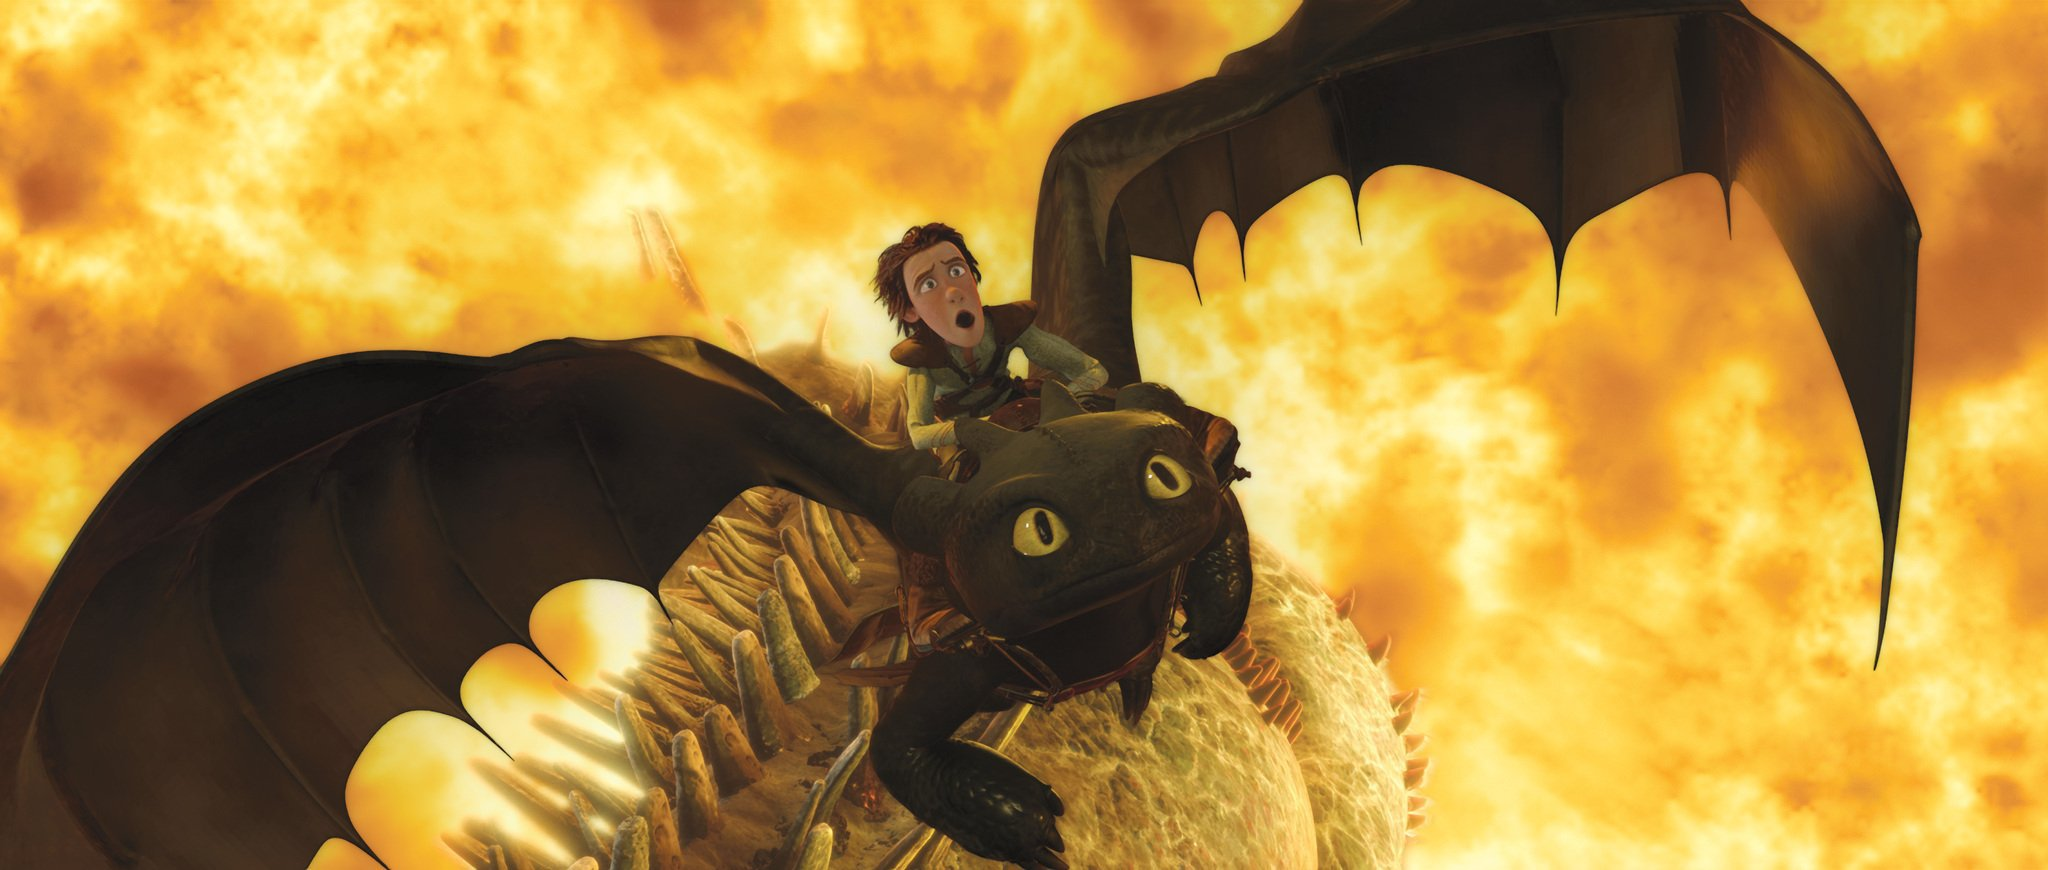 download full movie how to train your dragon